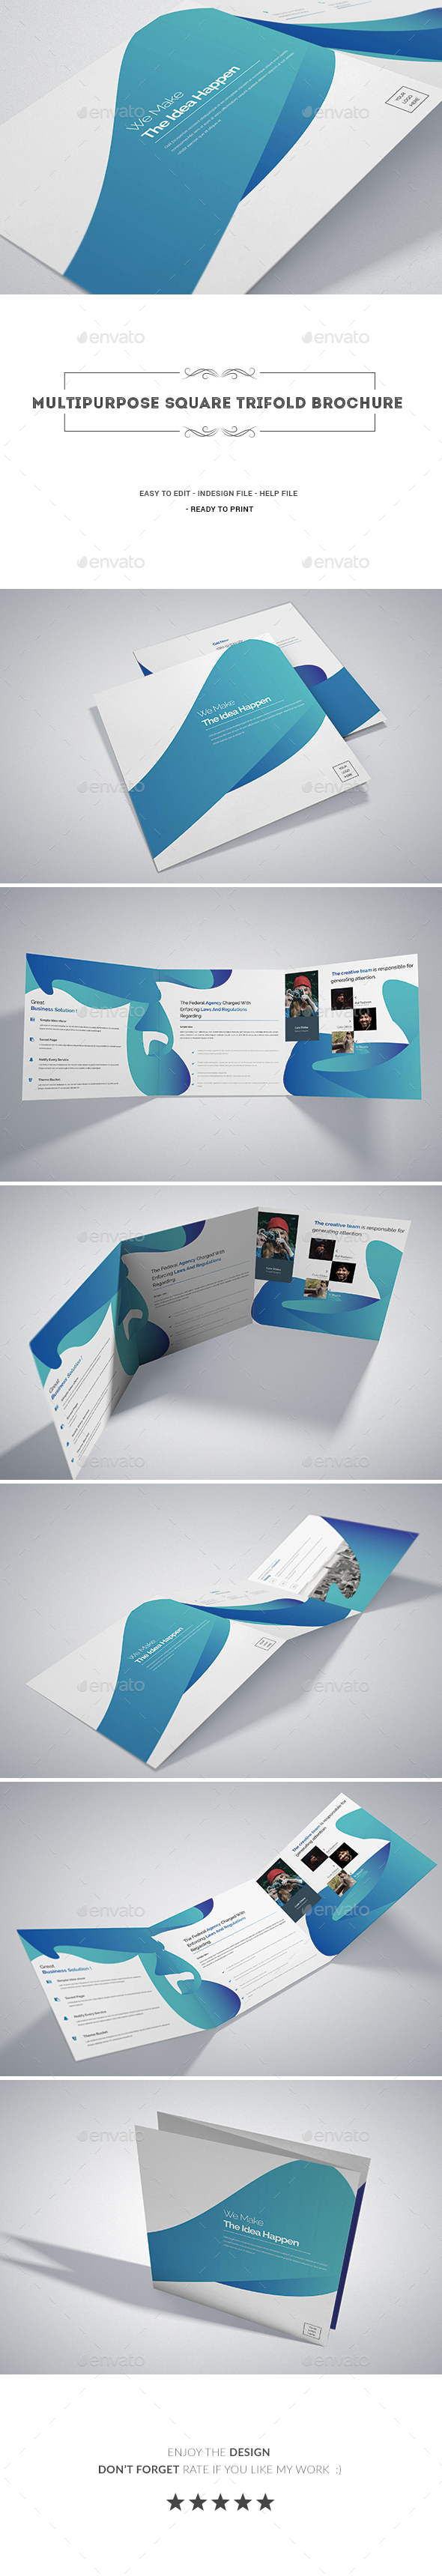 Multipurpose Square Tri-fold Brochure - Corporate Brochures